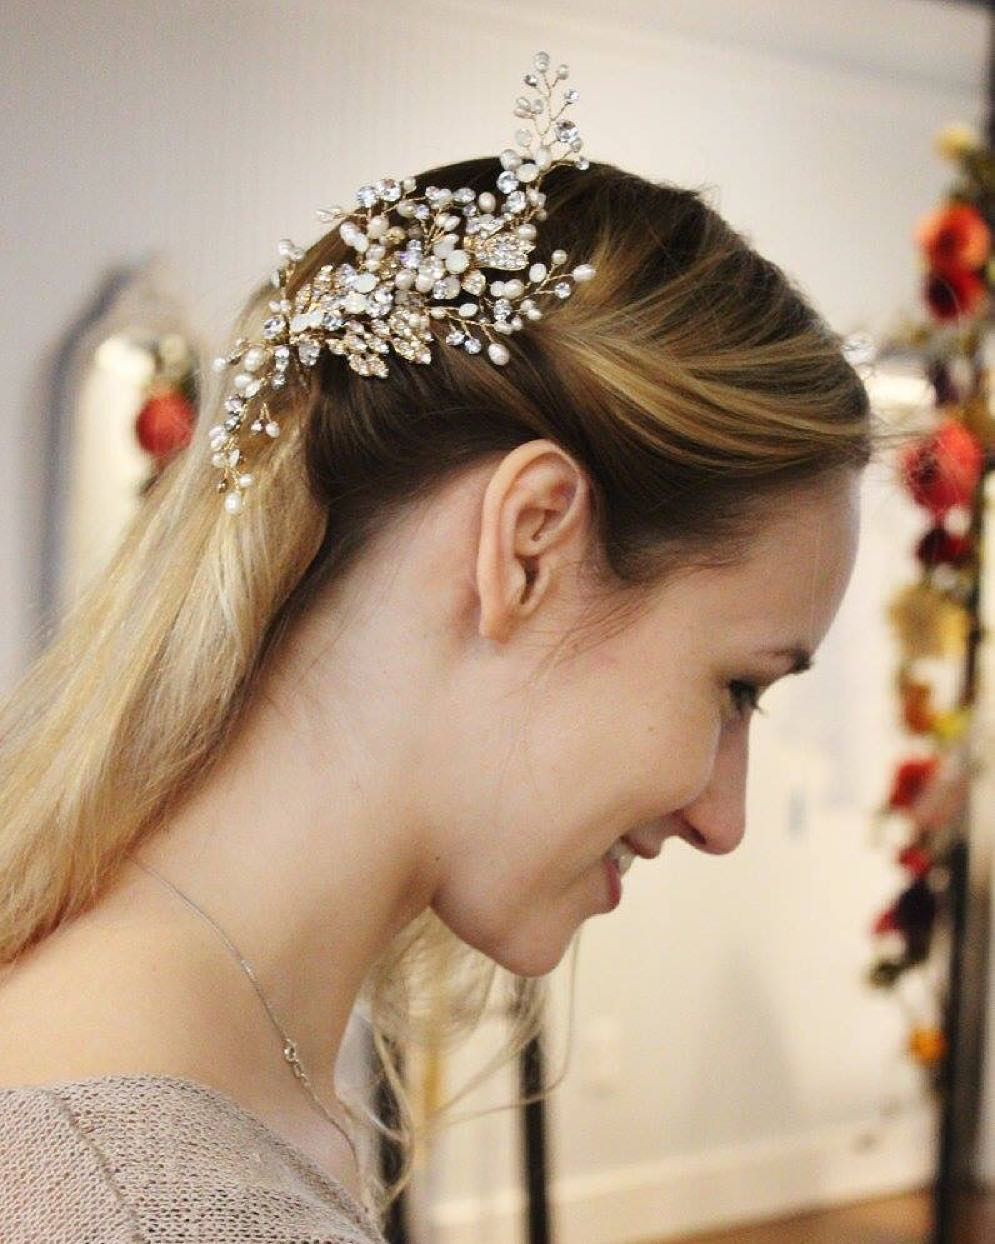 This loveliness was captured during one of our appointments this past Saturday! We are in love with this Crystal and Opal Spray comb by Twigs and Honey! It is the perfect touch of sparkle for your wedding day! Thank you for being a hair model @meg.lindsay !  #villagebridal #twigsandhoney #birminghambride #alabamaweddings #bridalaccessories